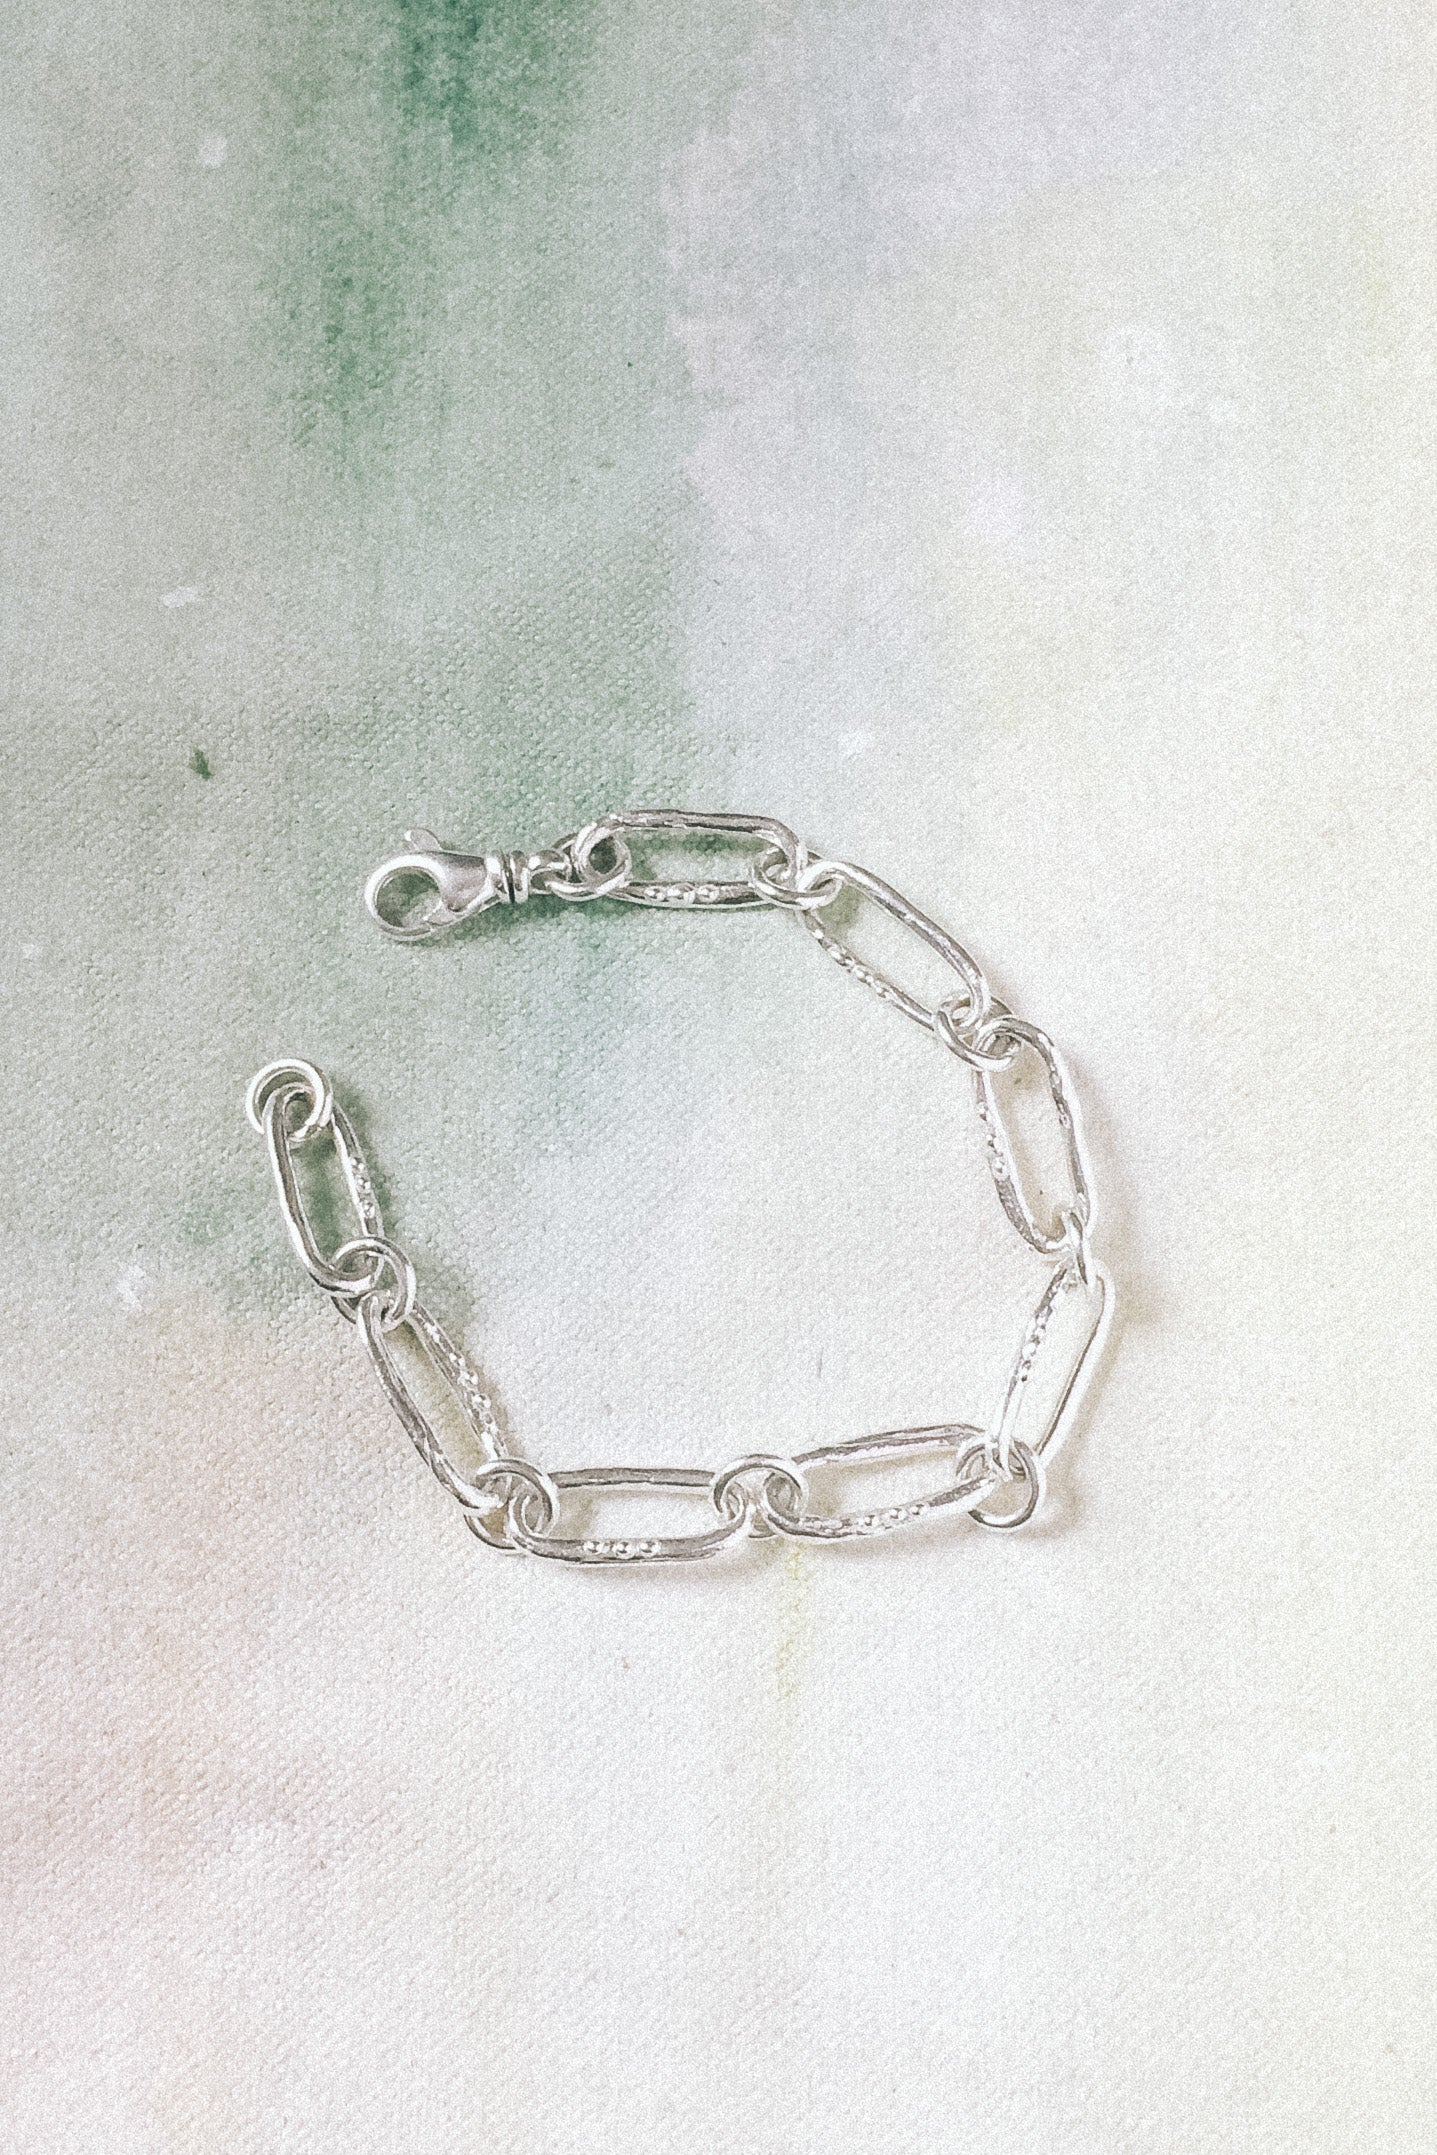 Link Bracelet RYHN jewellery At Evenfall Collection